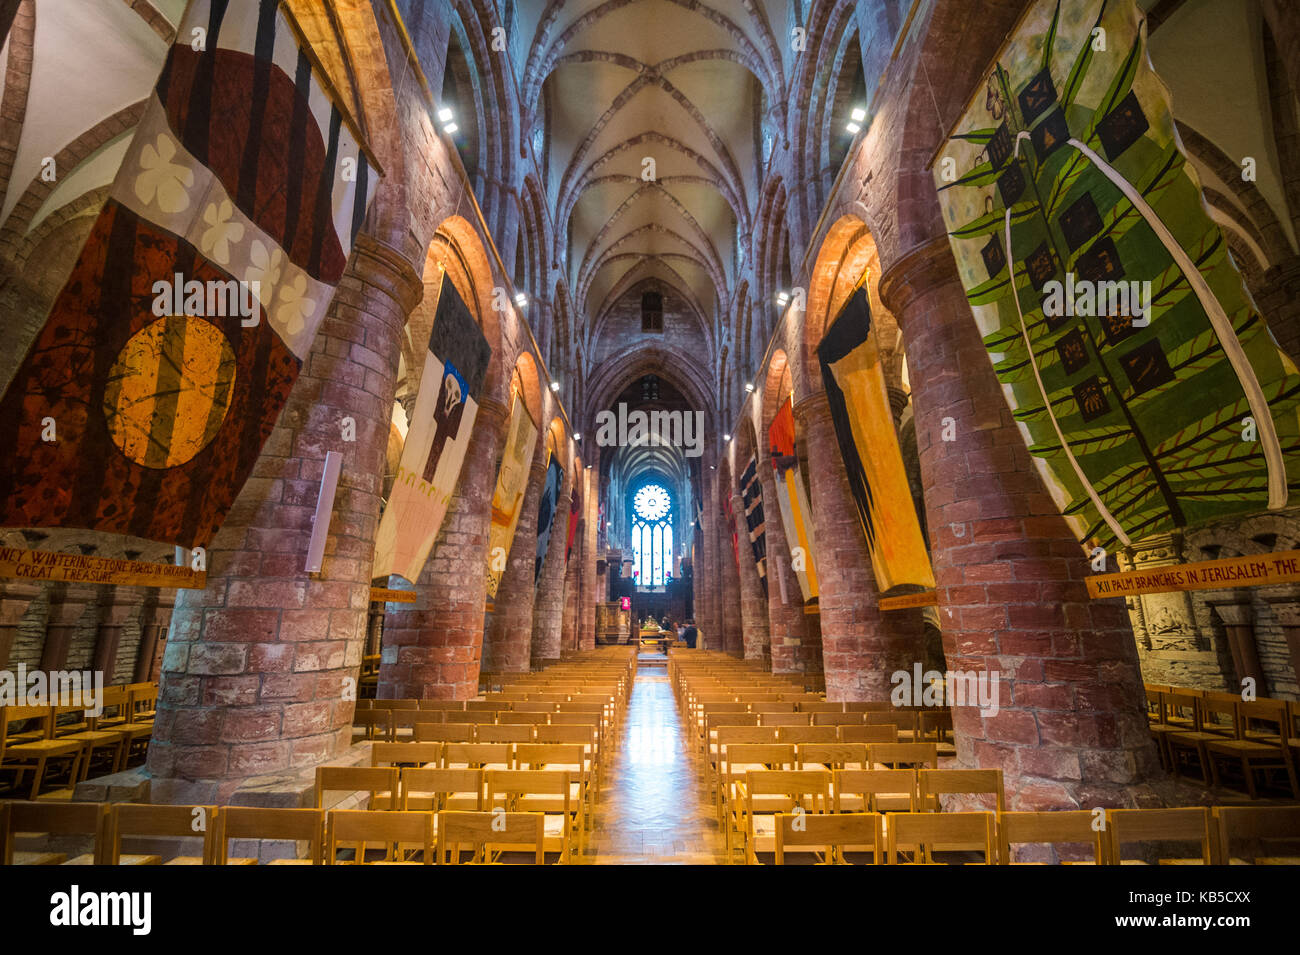 Interior of the St. Magnus Cathedral, Kirkwall, Orkney Islands, Scotland, United Kingdom, Europe - Stock Image